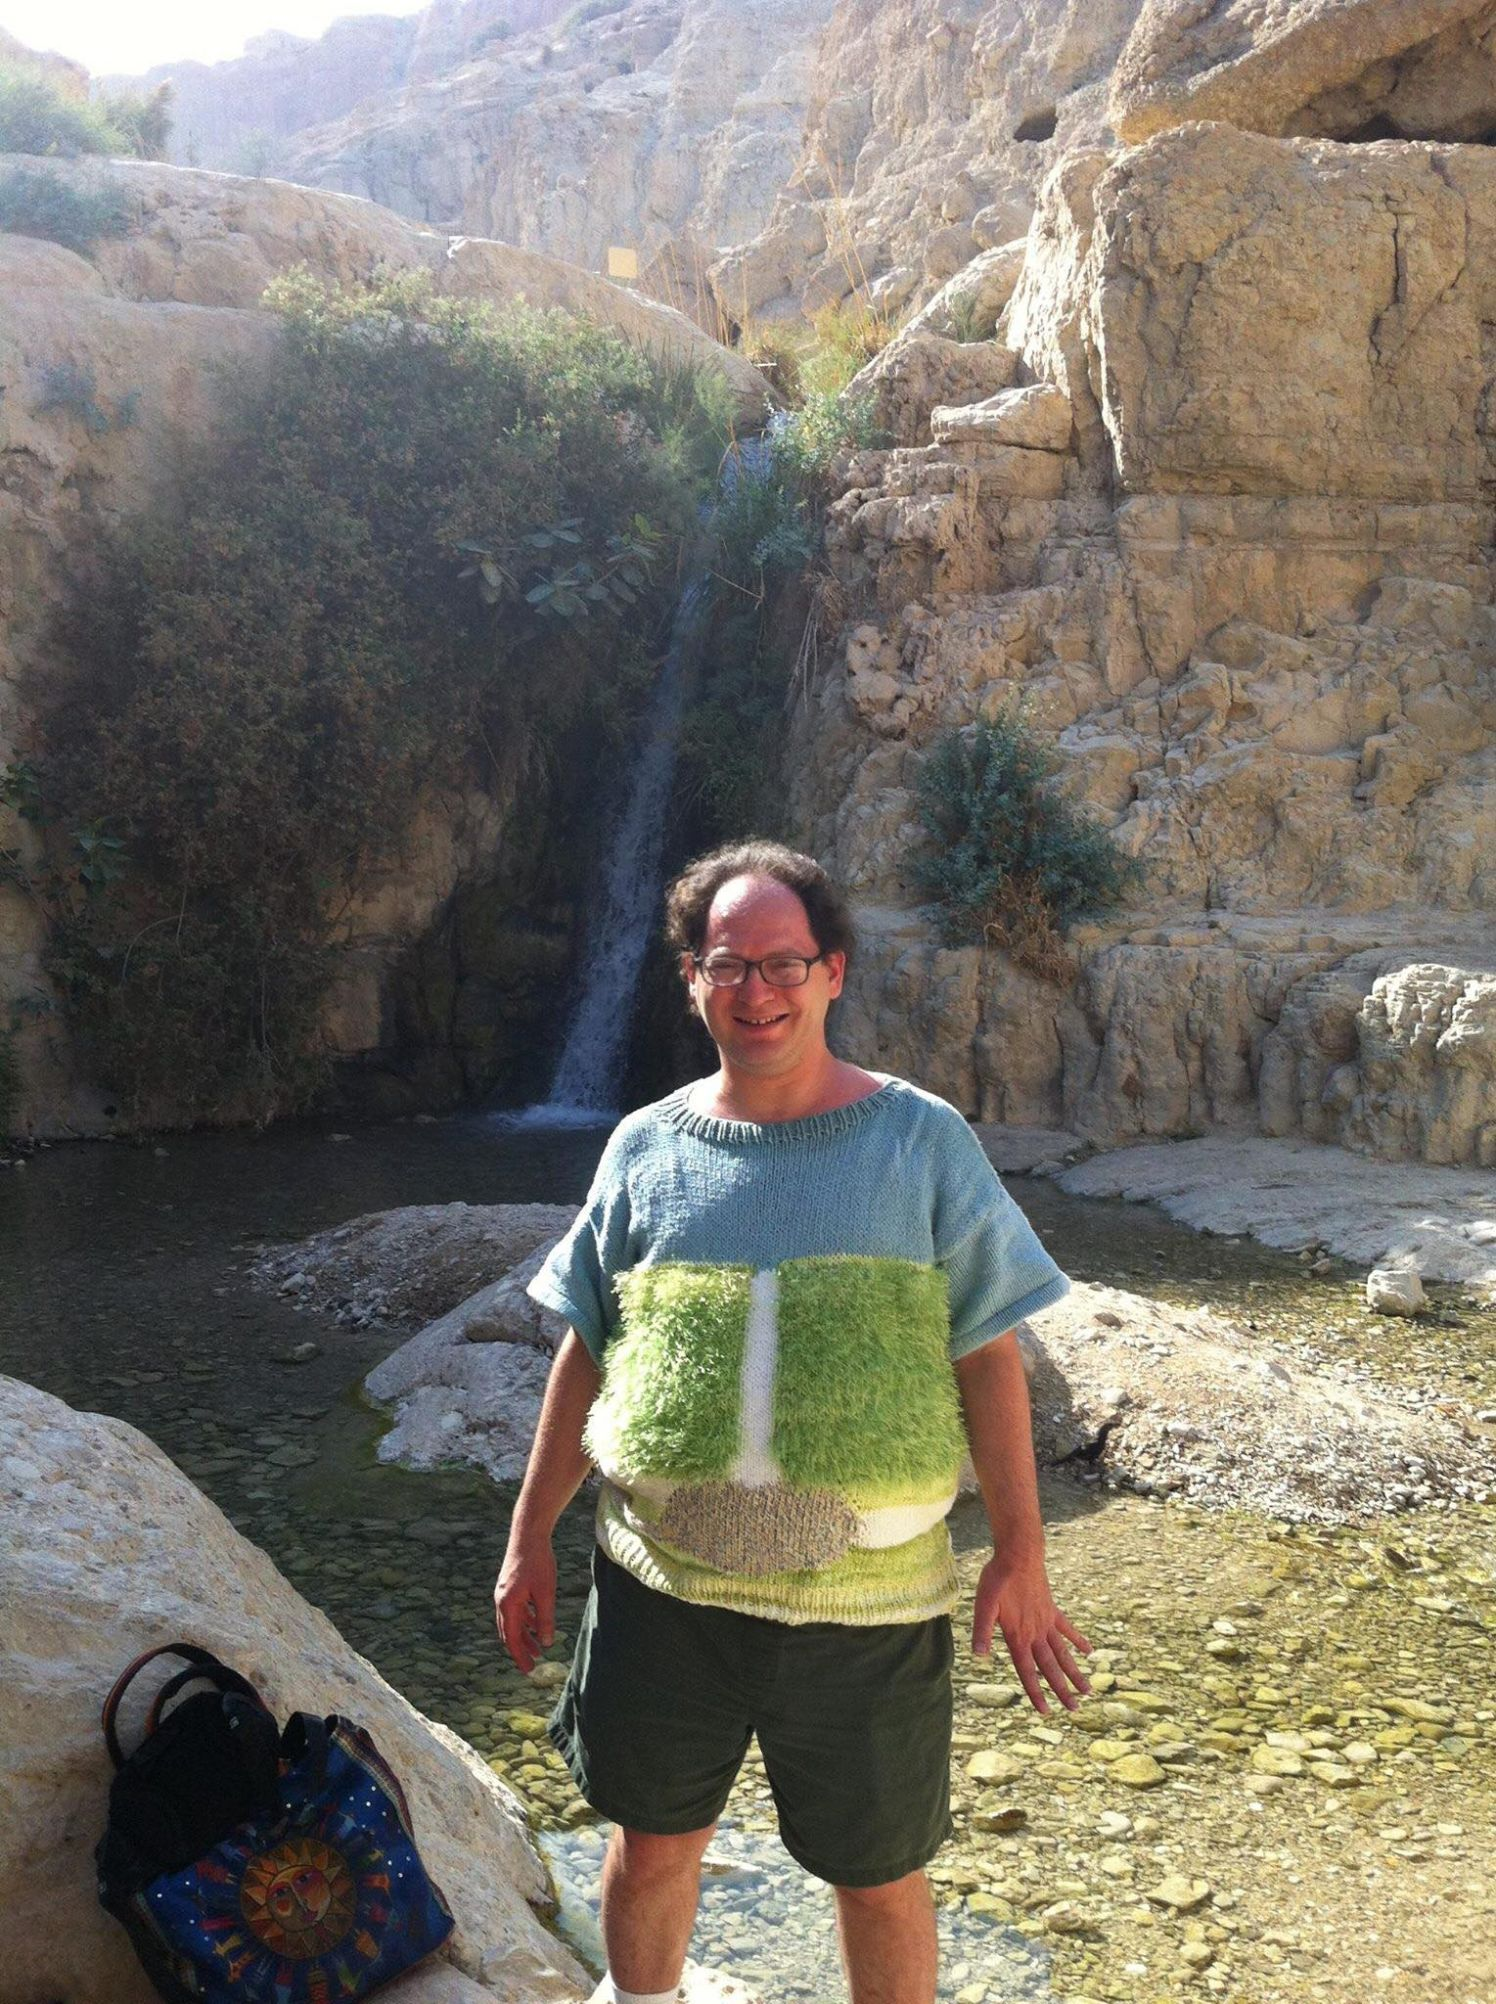 Sam Barsky at Ein Gedi, near the Dead Sea, wearing his sweater depicting the Ein Gedi waterfall